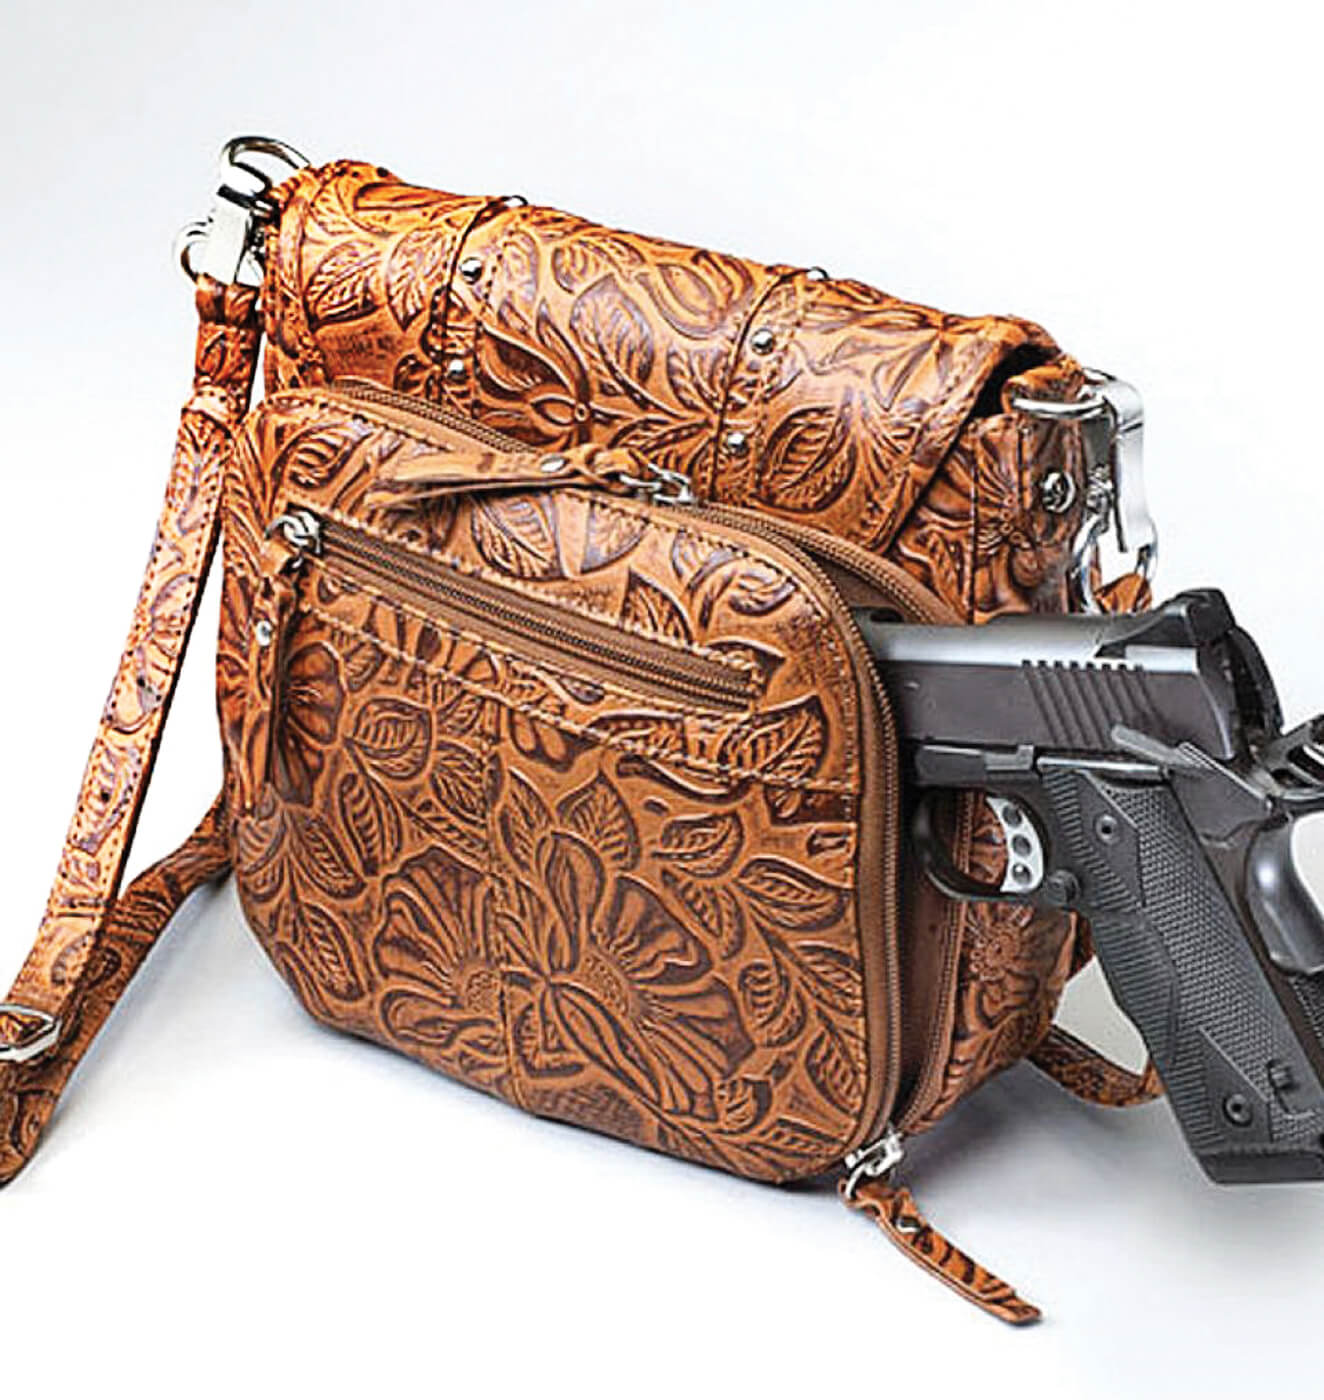 Roseleaf-patterned tote bag for women with 1911 pistol emerging from concealed carry compartment